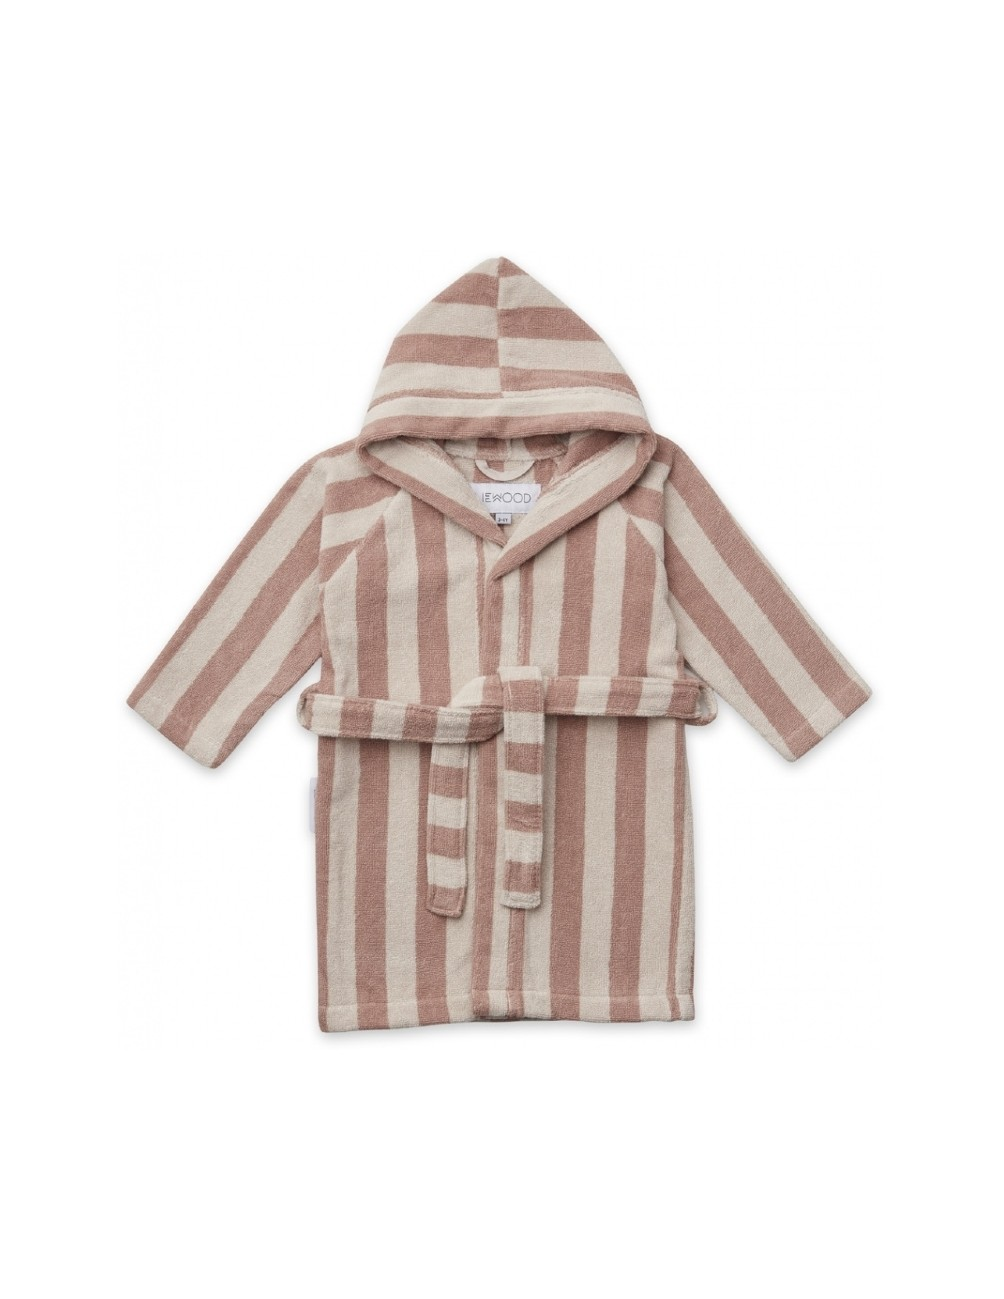 Reggie Bathrobe Striped Rose/Sand